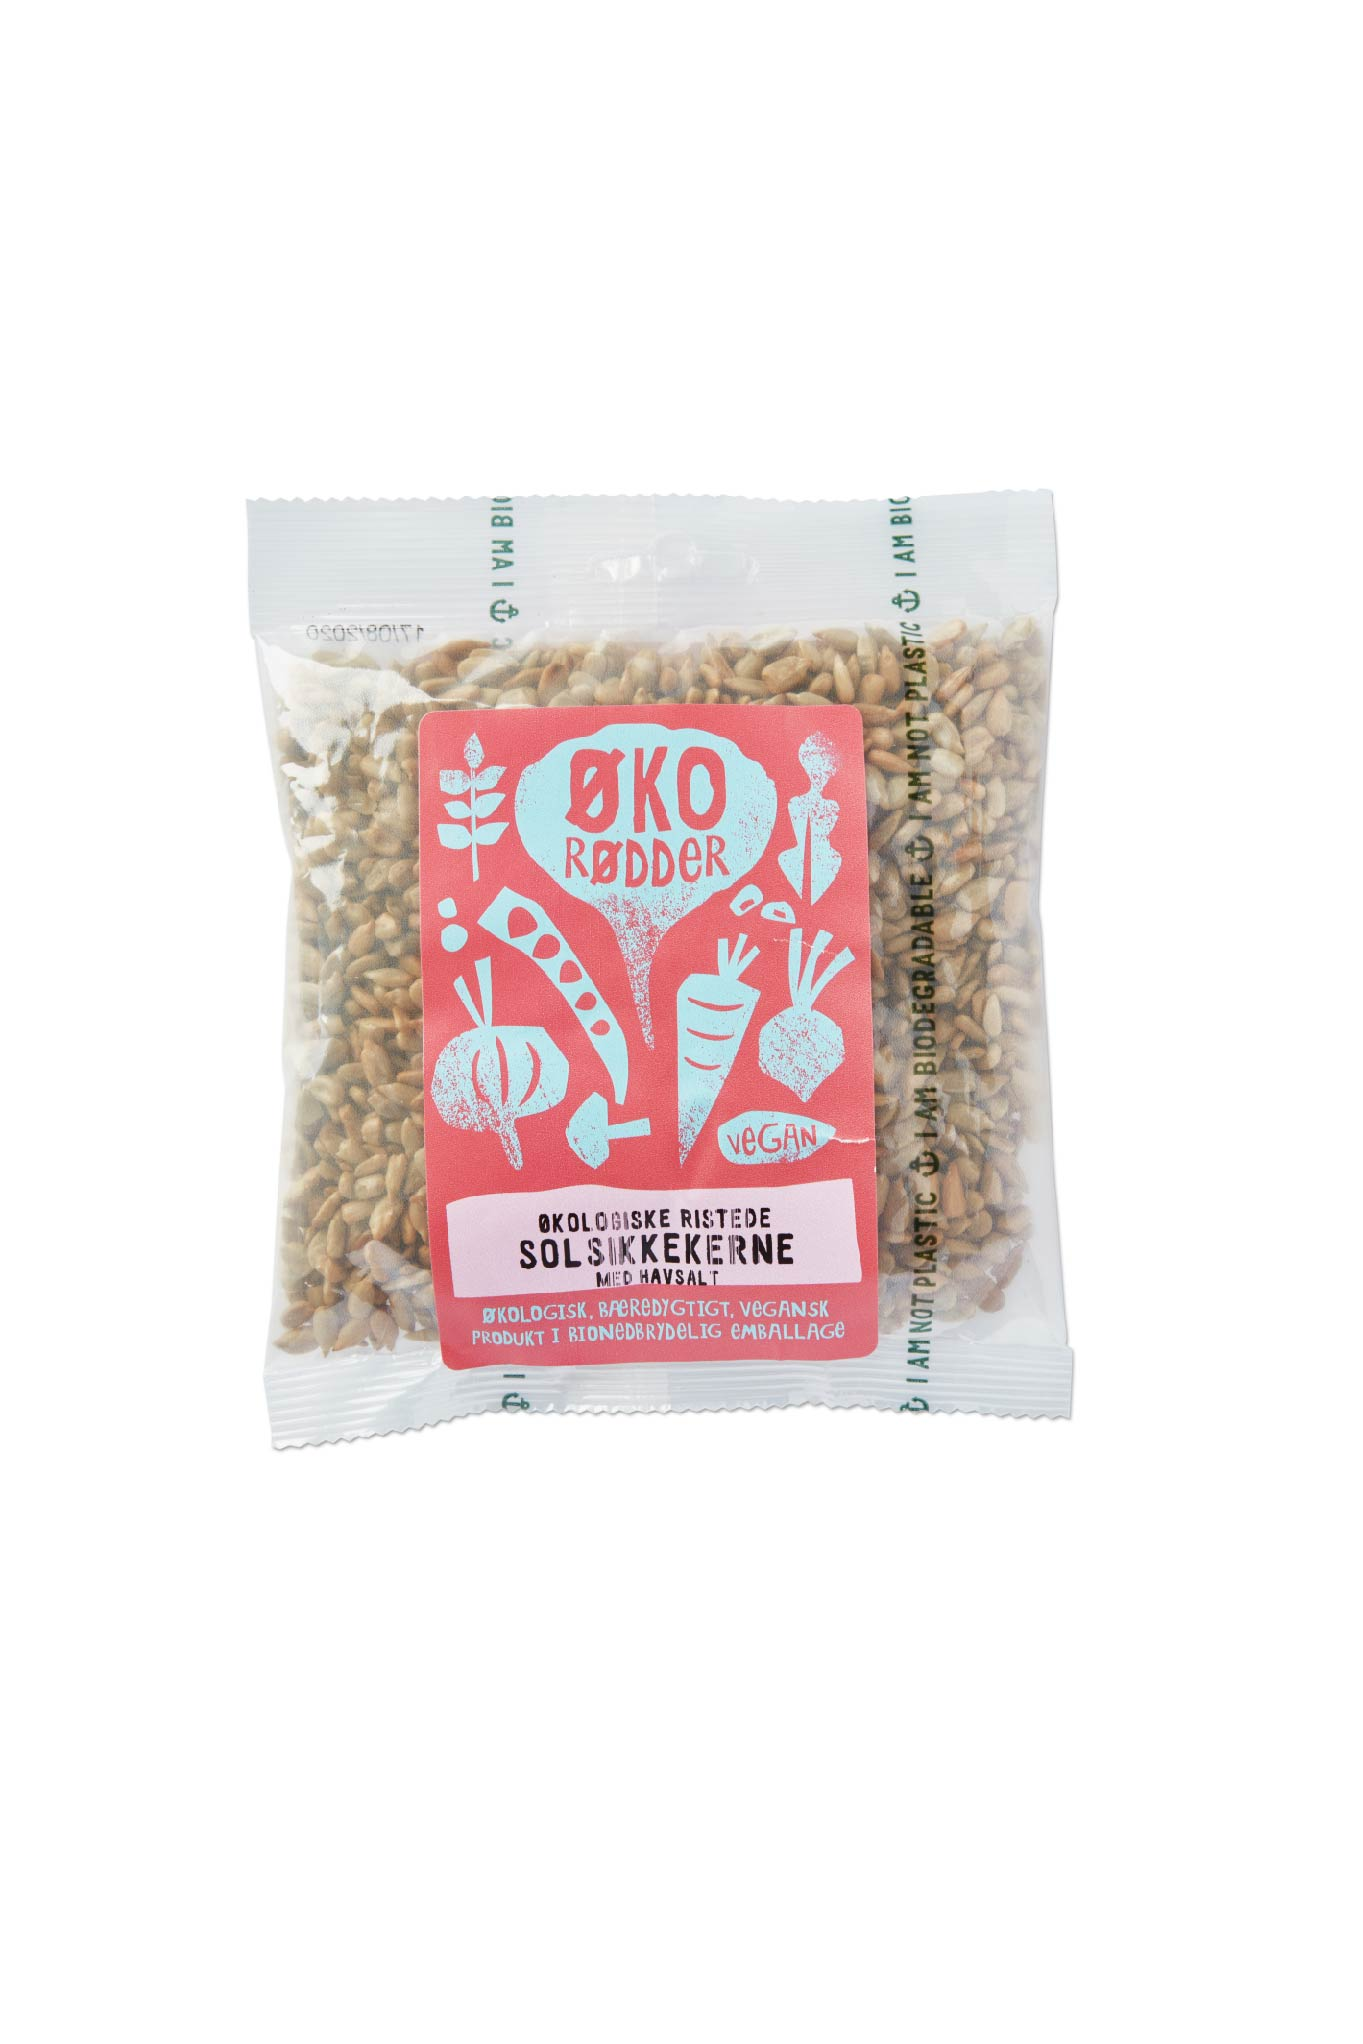 Organic Roasted Sunflower Seeds with Sea salt - 20 x 135g